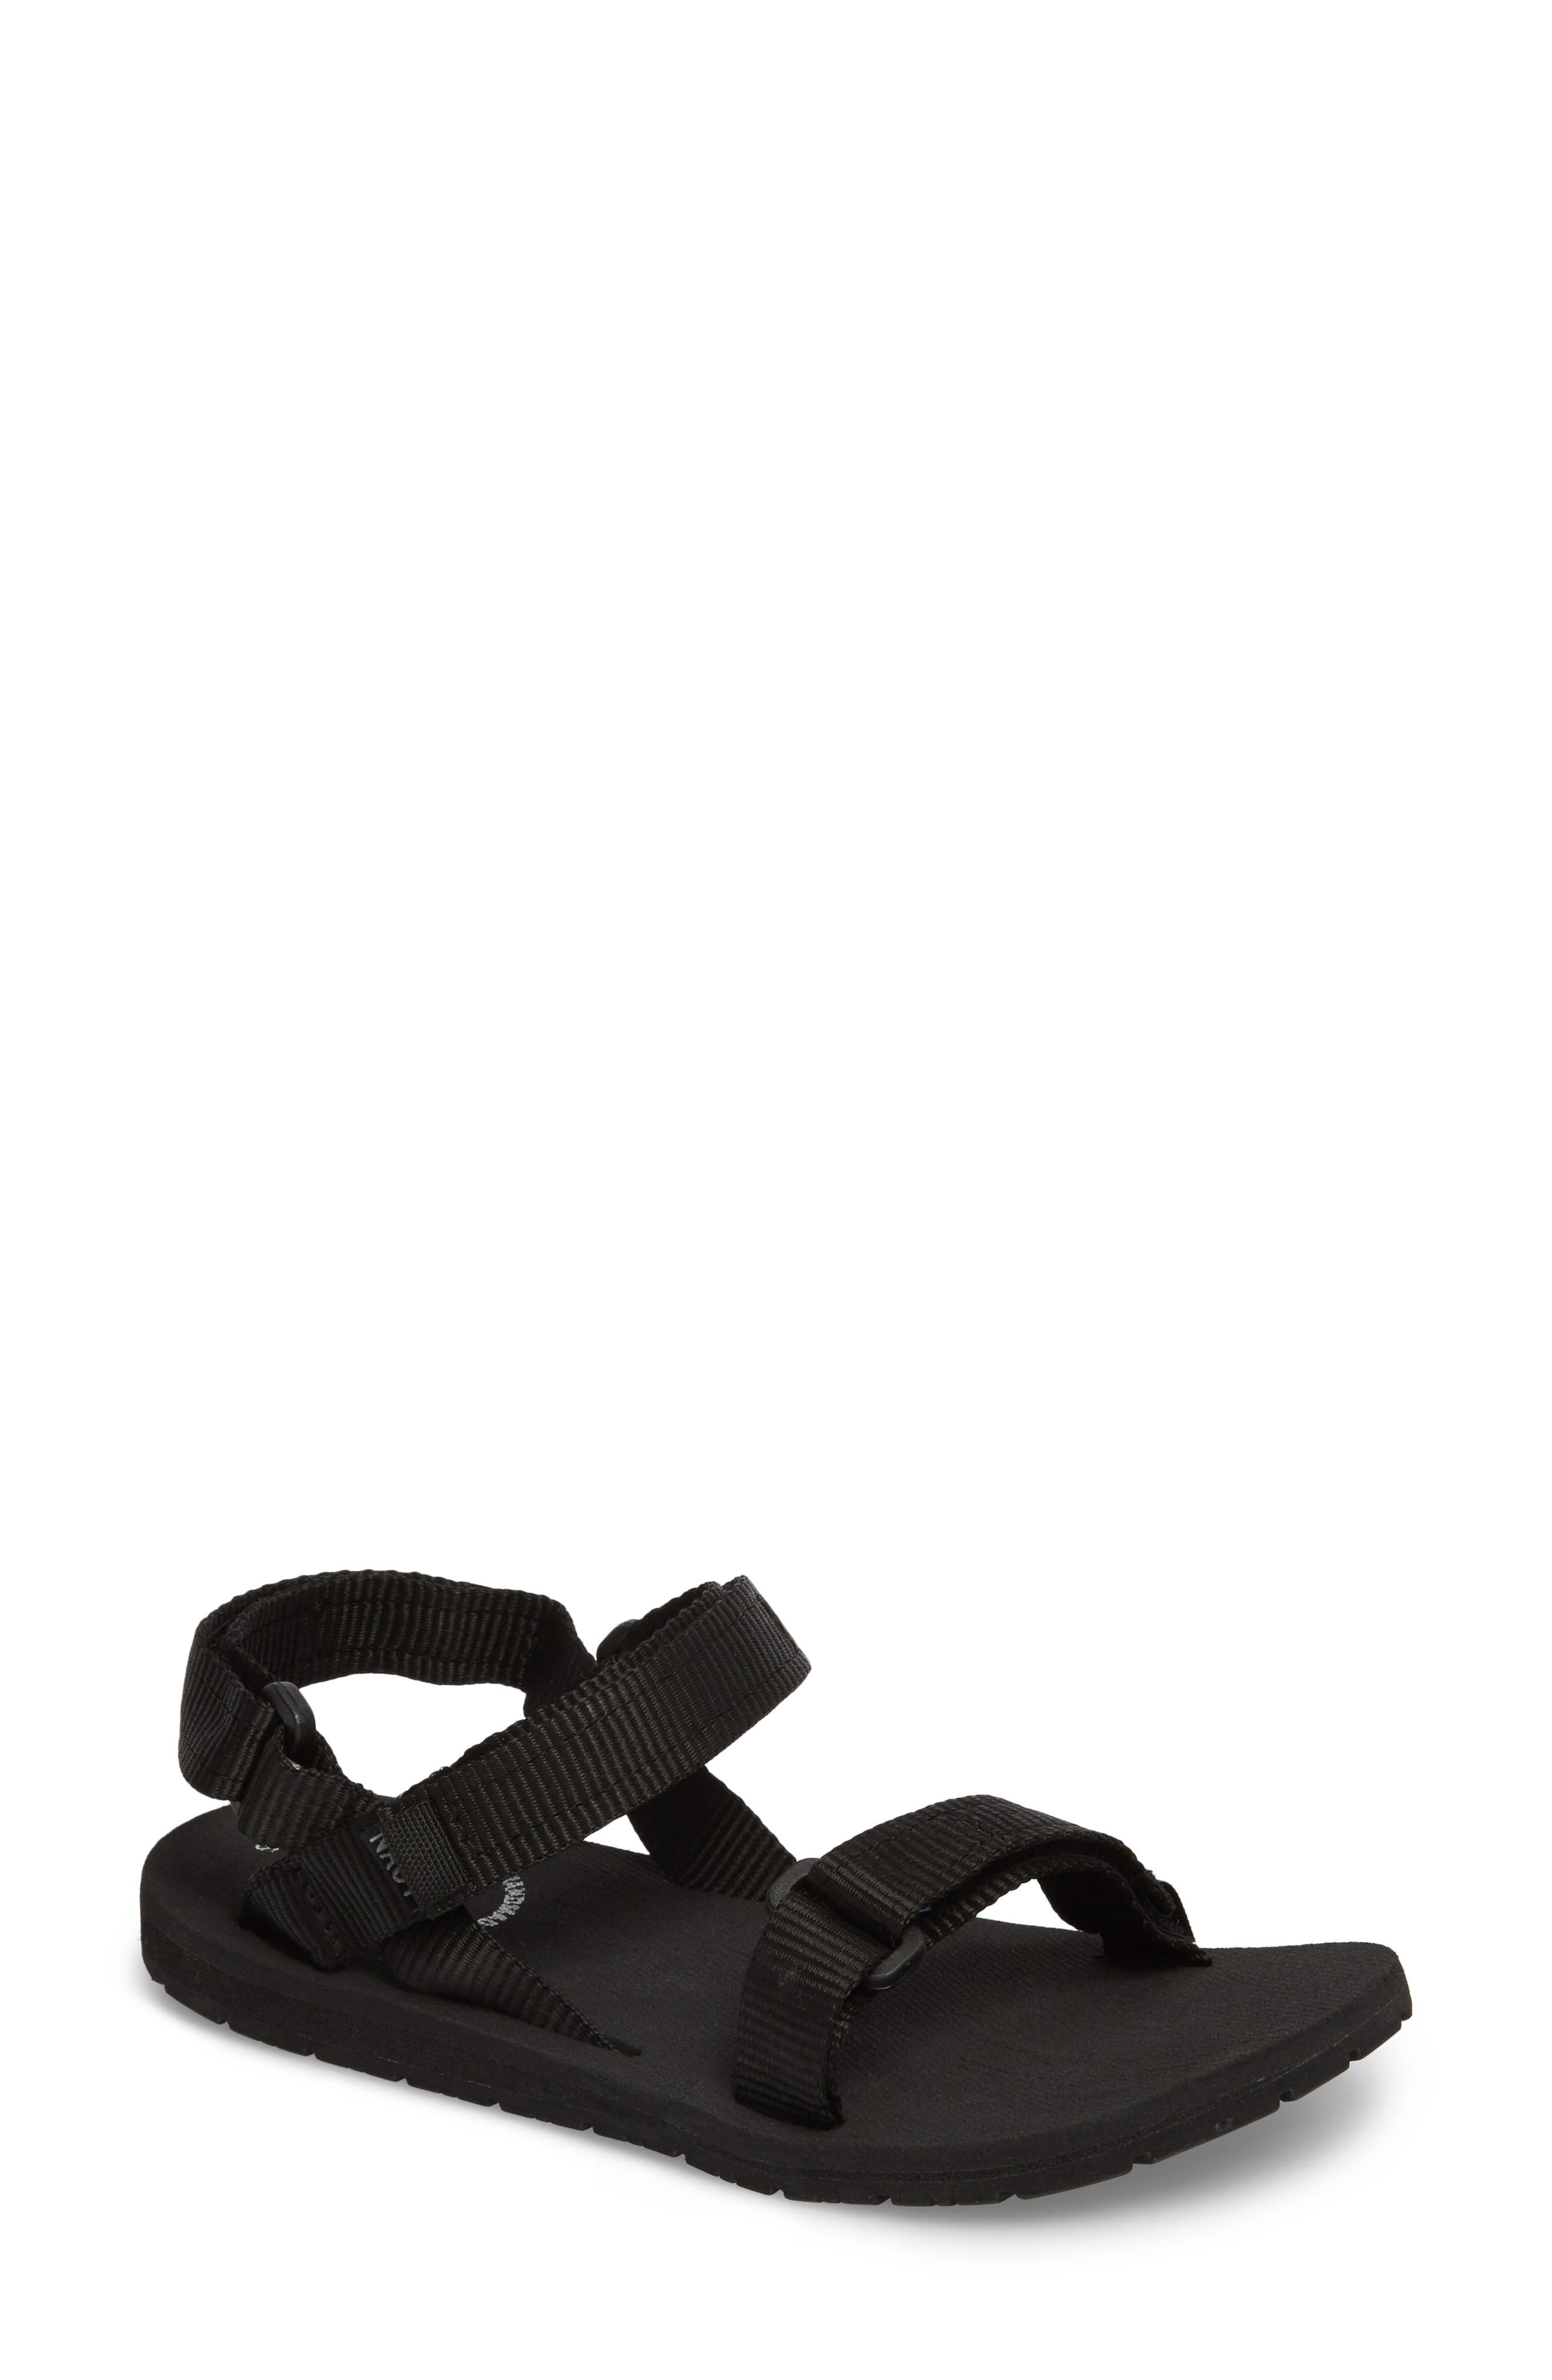 Haven Waterproof Sandal,                             Main thumbnail 1, color,                             BLACK FABRIC